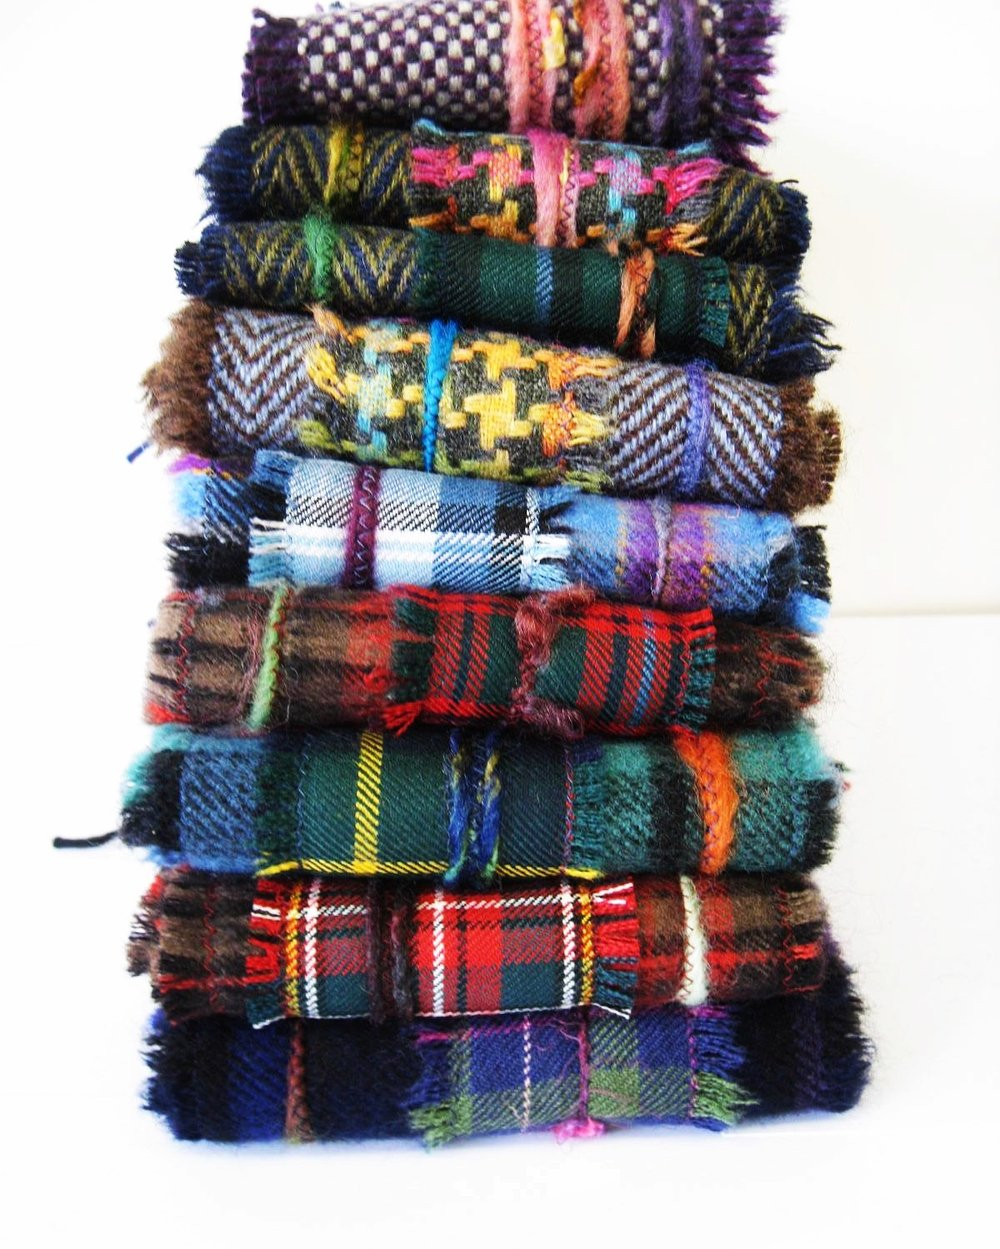 Fringe Scarves - Fringe Scarves are made from my softest wool tweeds and lightweight tartans all locally sourced. They are made with a couple of layers of fabric and added funky yarns and fringing for extra texture and colour. They make great gifts as everyone loves a warm scarf.